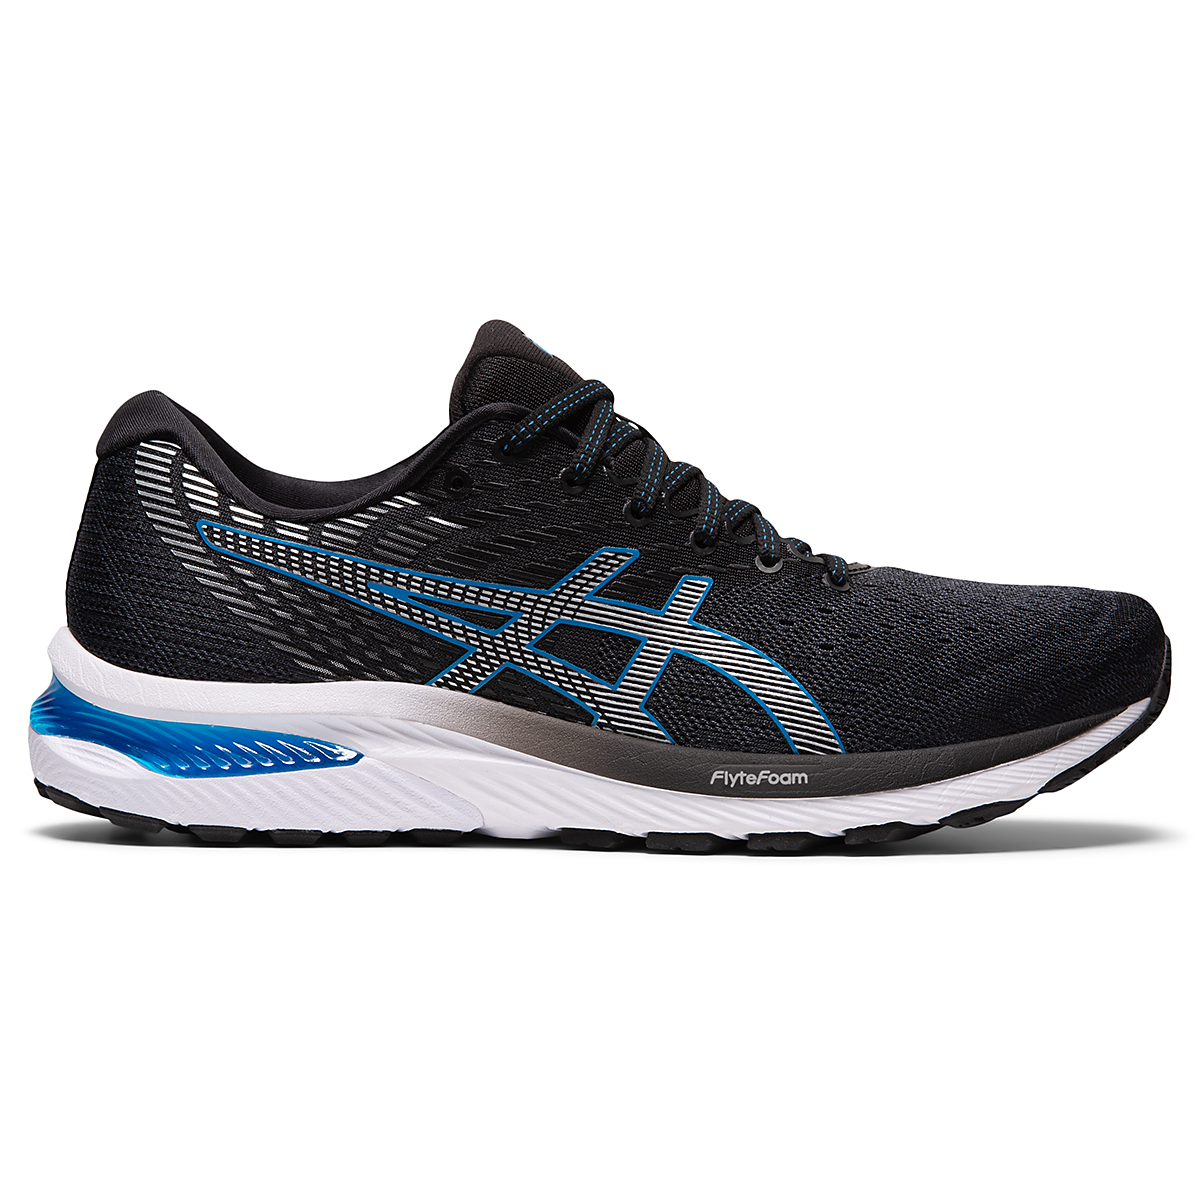 Men's Asics GEL-Cumulus 22 Running Shoe - Color: Carrier Grey/Pure Silver - Size: 7 - Width: Regular, Carrier Grey/Pure Silver, large, image 1